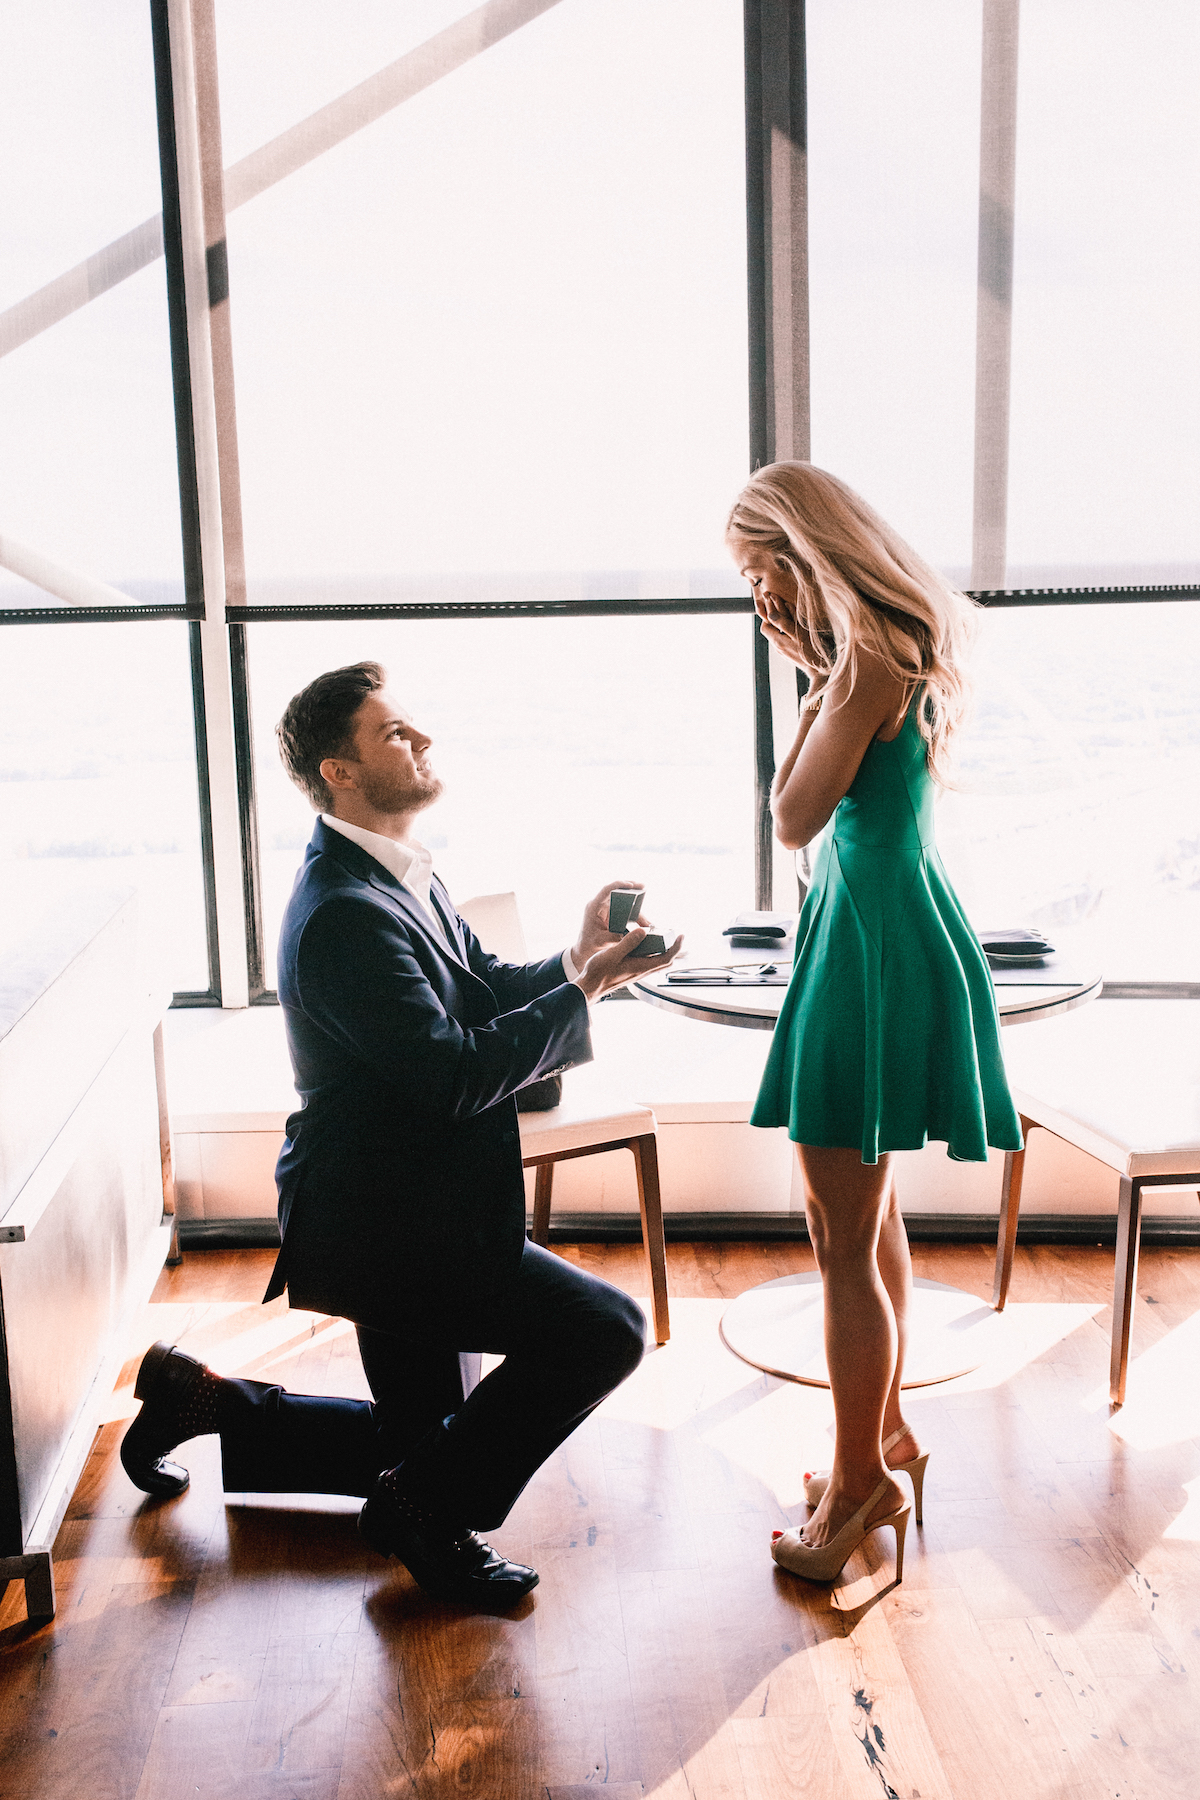 Watch this Amazing Dallas Marriage Proposal Idea